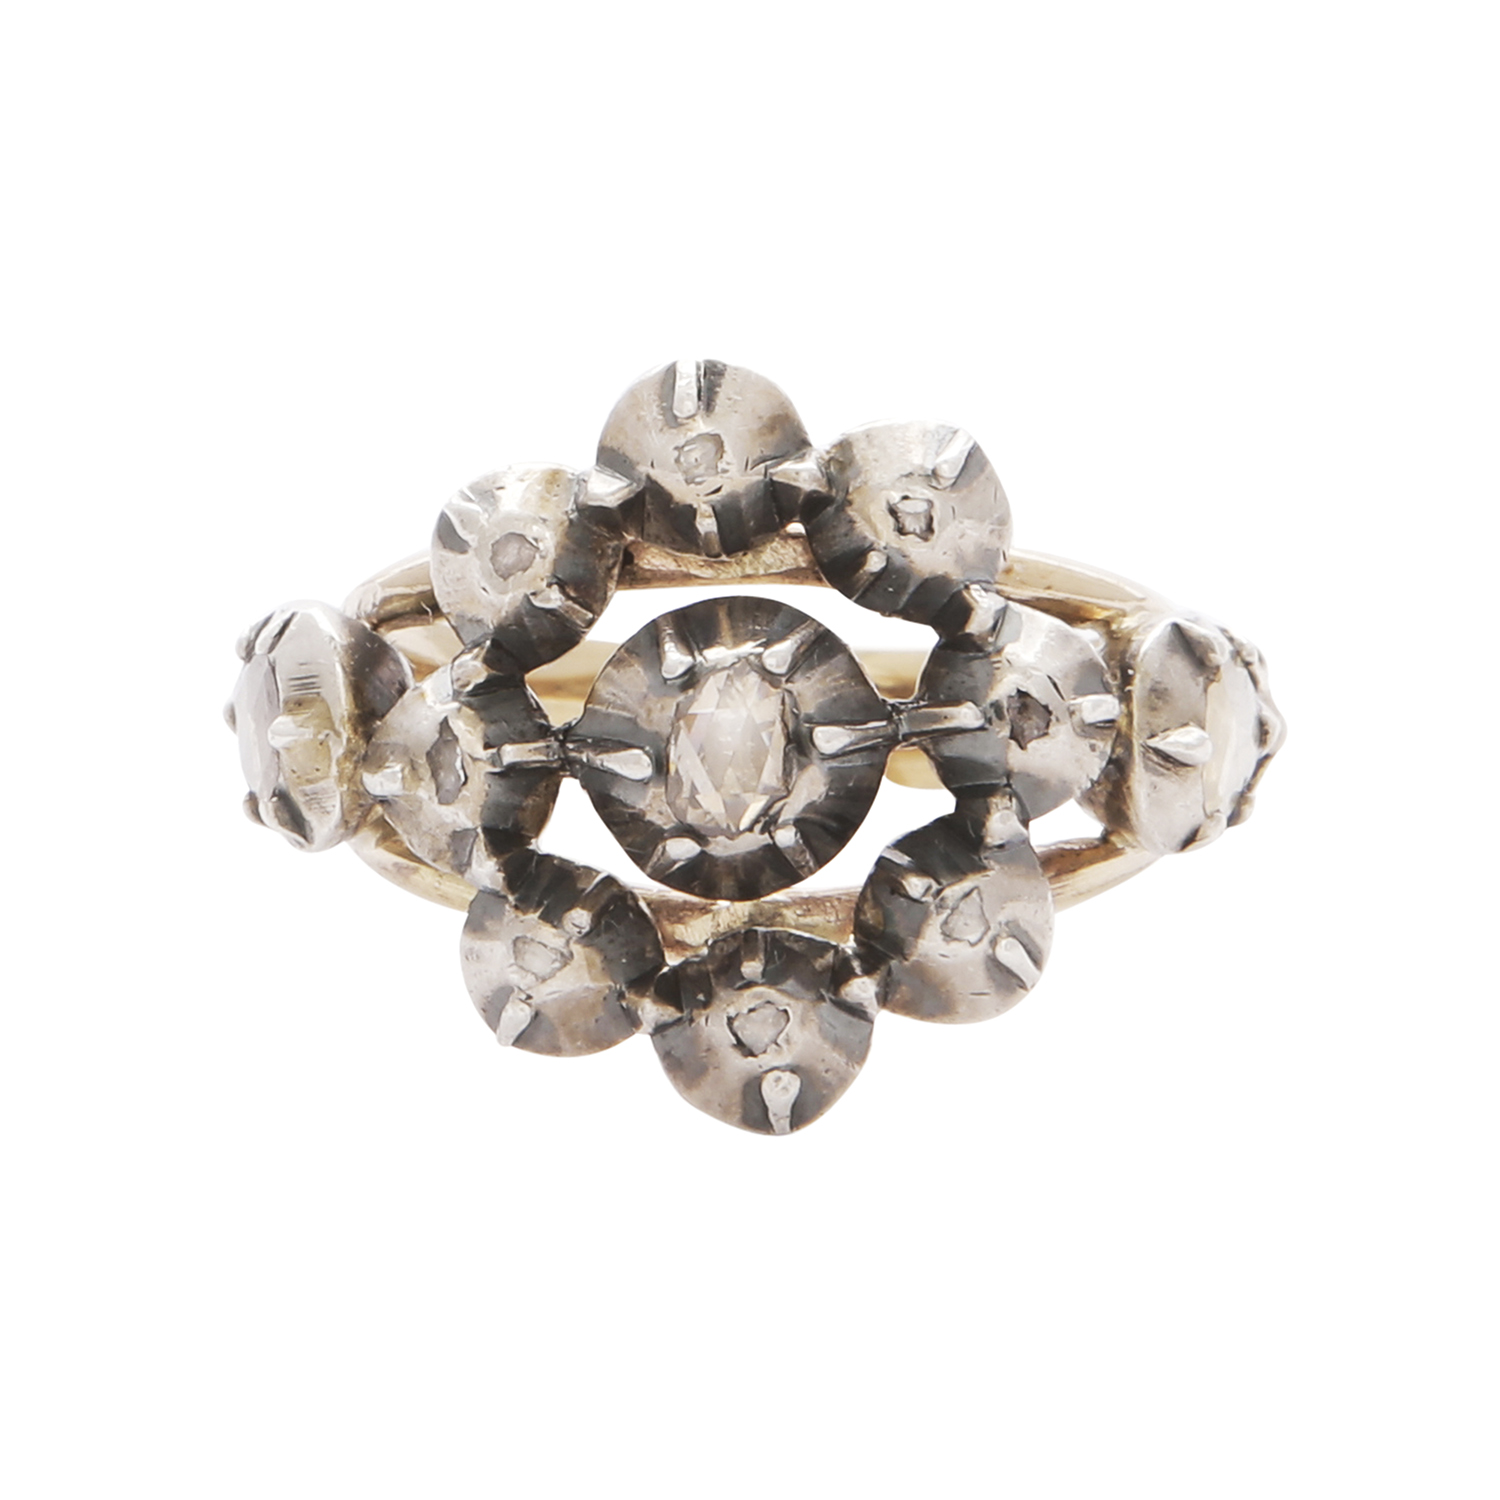 Los 41 - A DIAMOND CLUSTER RING, EARLY 19TH CENTURY in yellow gold and silver, set with a central rose cut